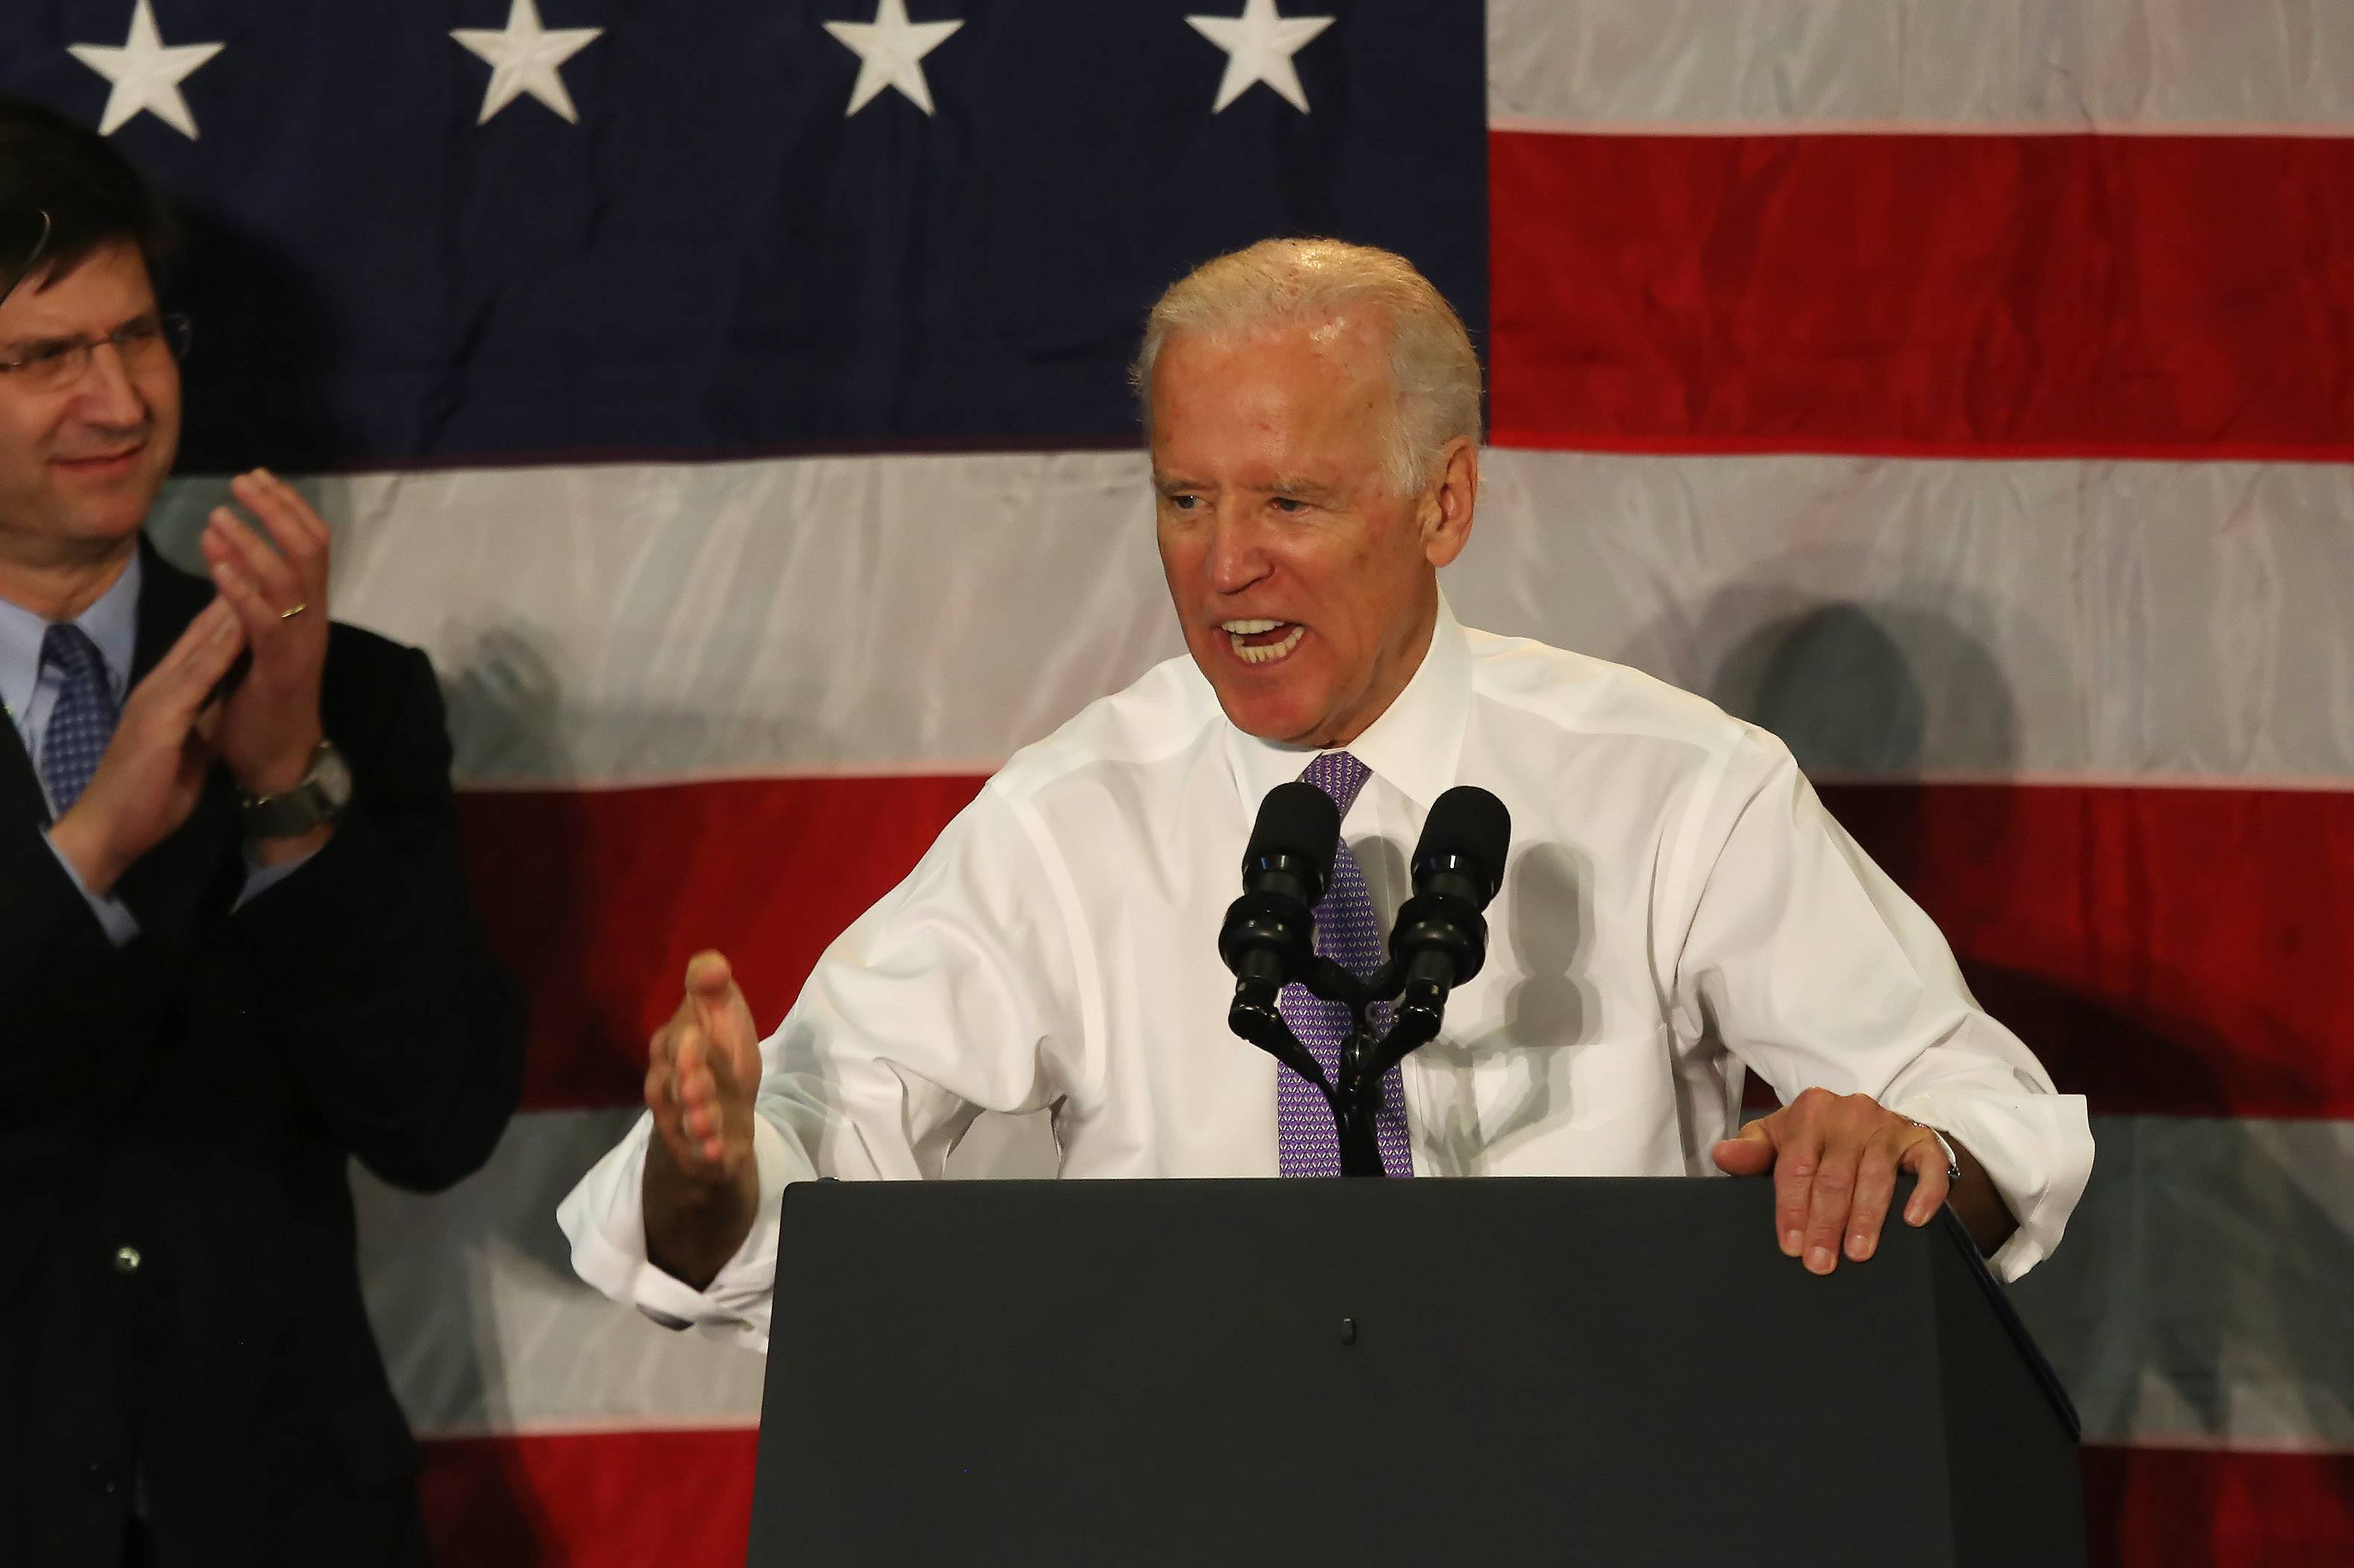 Vice President Joe Biden spoke to a crowd of more than 750 in Vernon Hills on Wednesday at a campaign rally for several Illinois Democrats, including U.S. Rep. Brad Schneider and Sen. Dick Durbin.